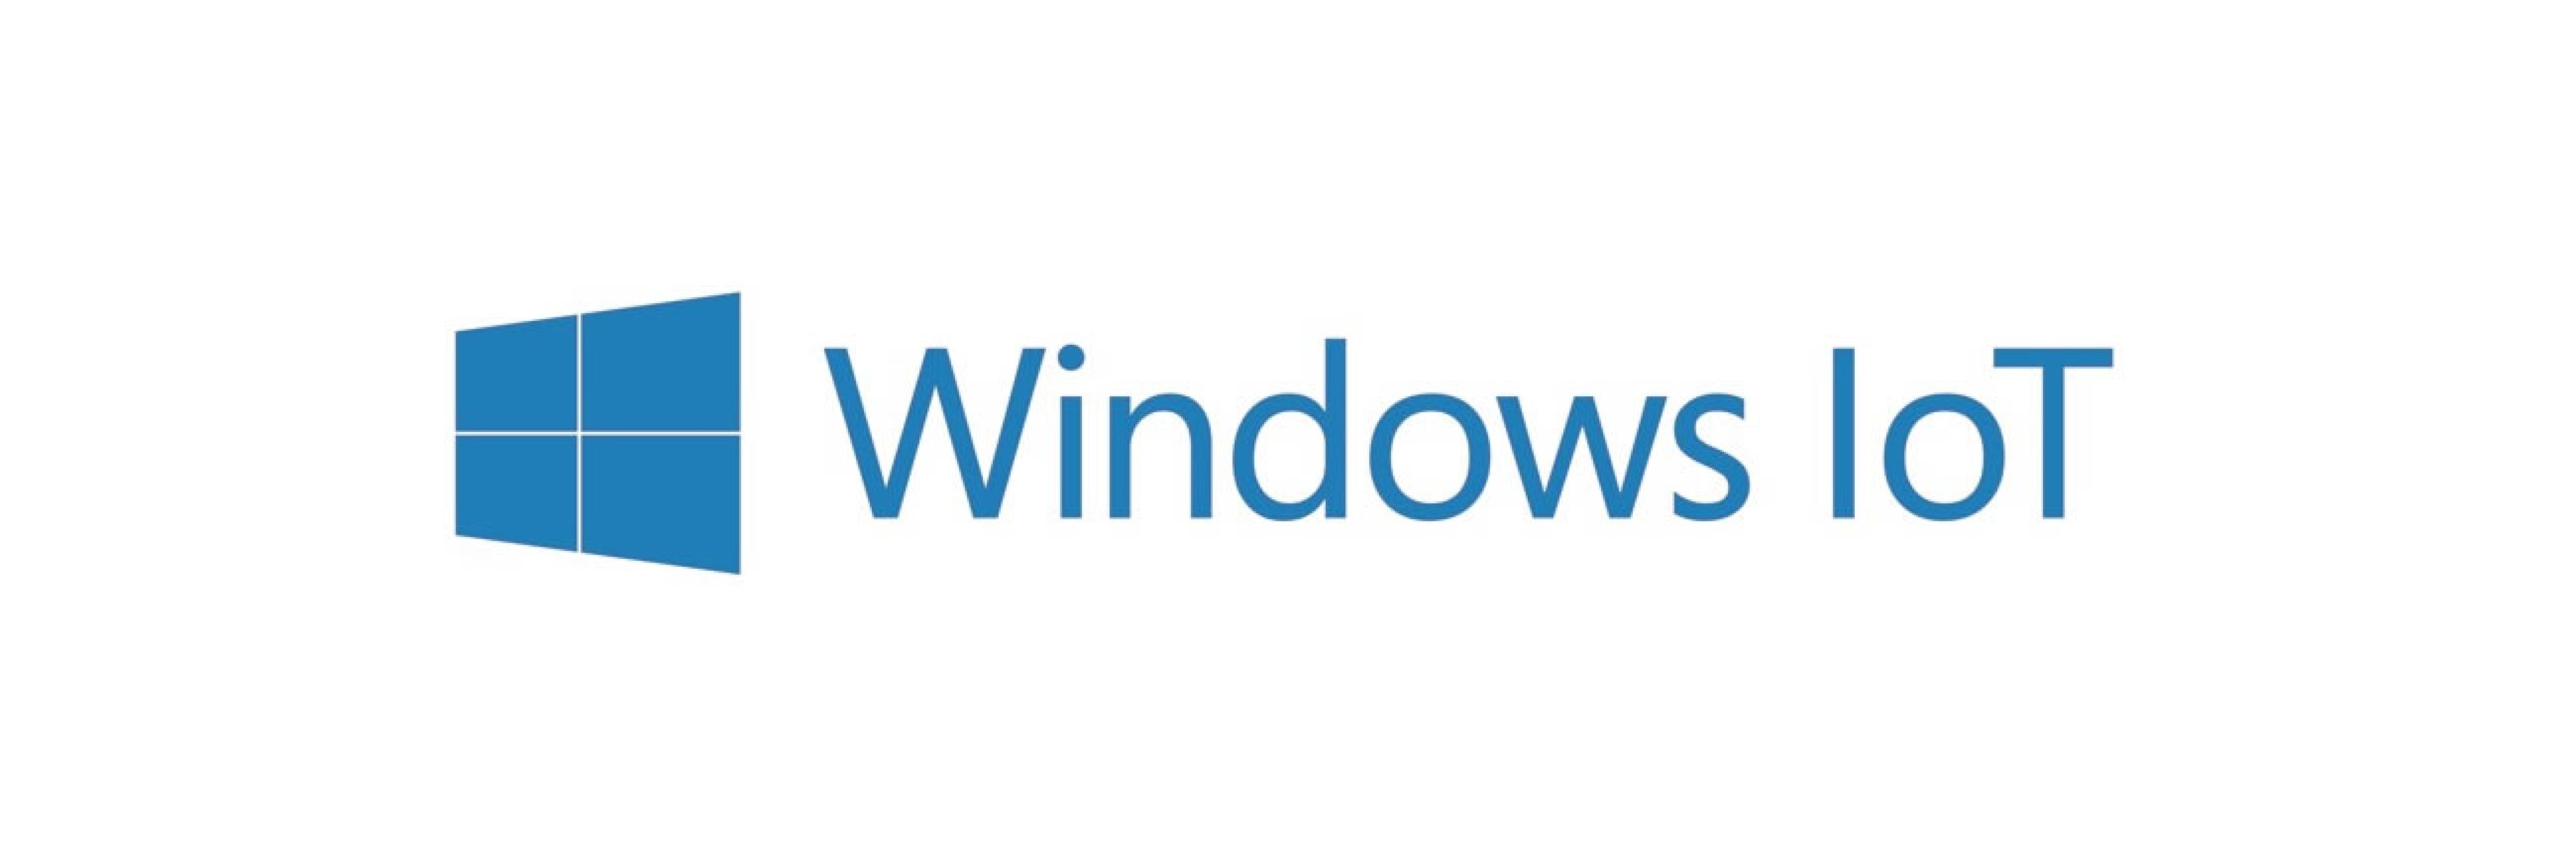 Windowsiot